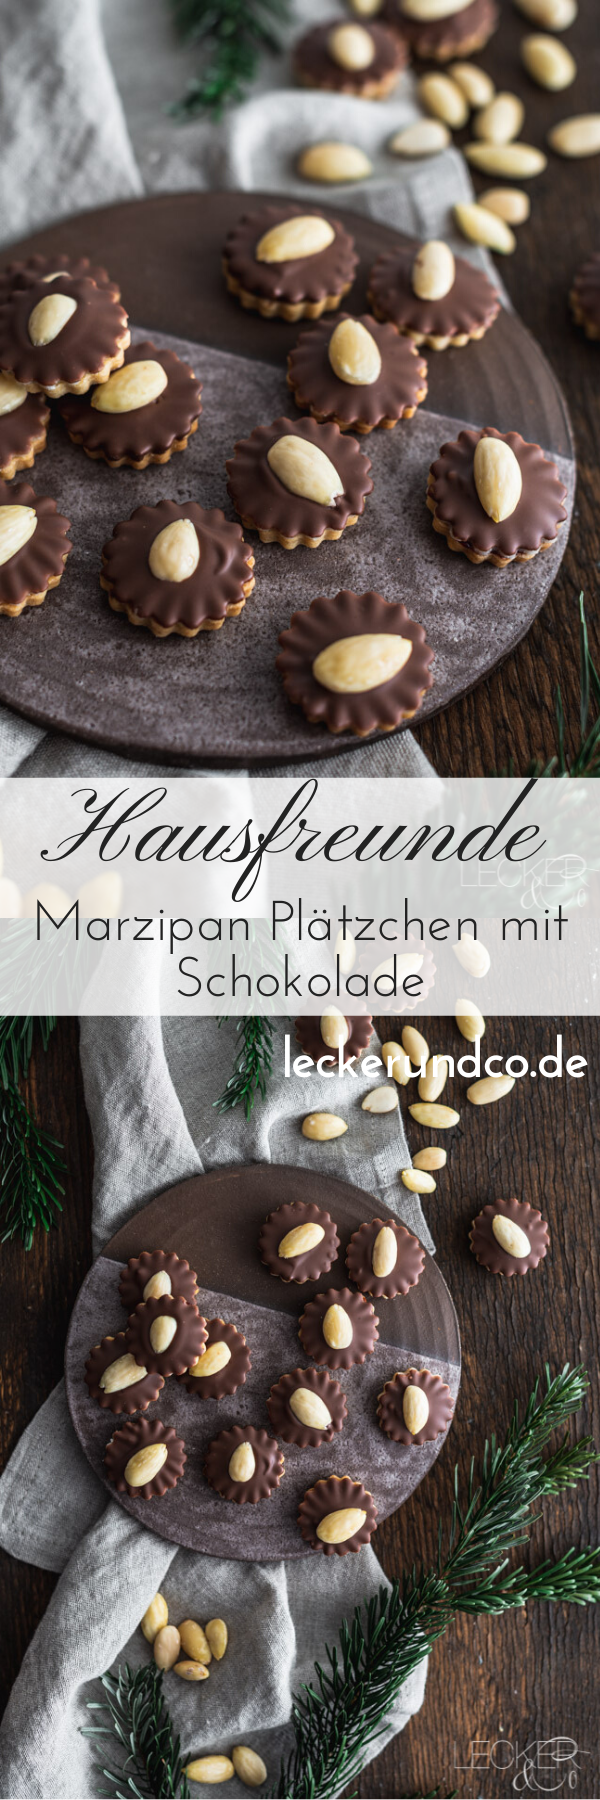 Photo of LECKER & Co   Food blog from Nuremberg   Cooking and baking fresh, delicious, seasonal and regional – without F